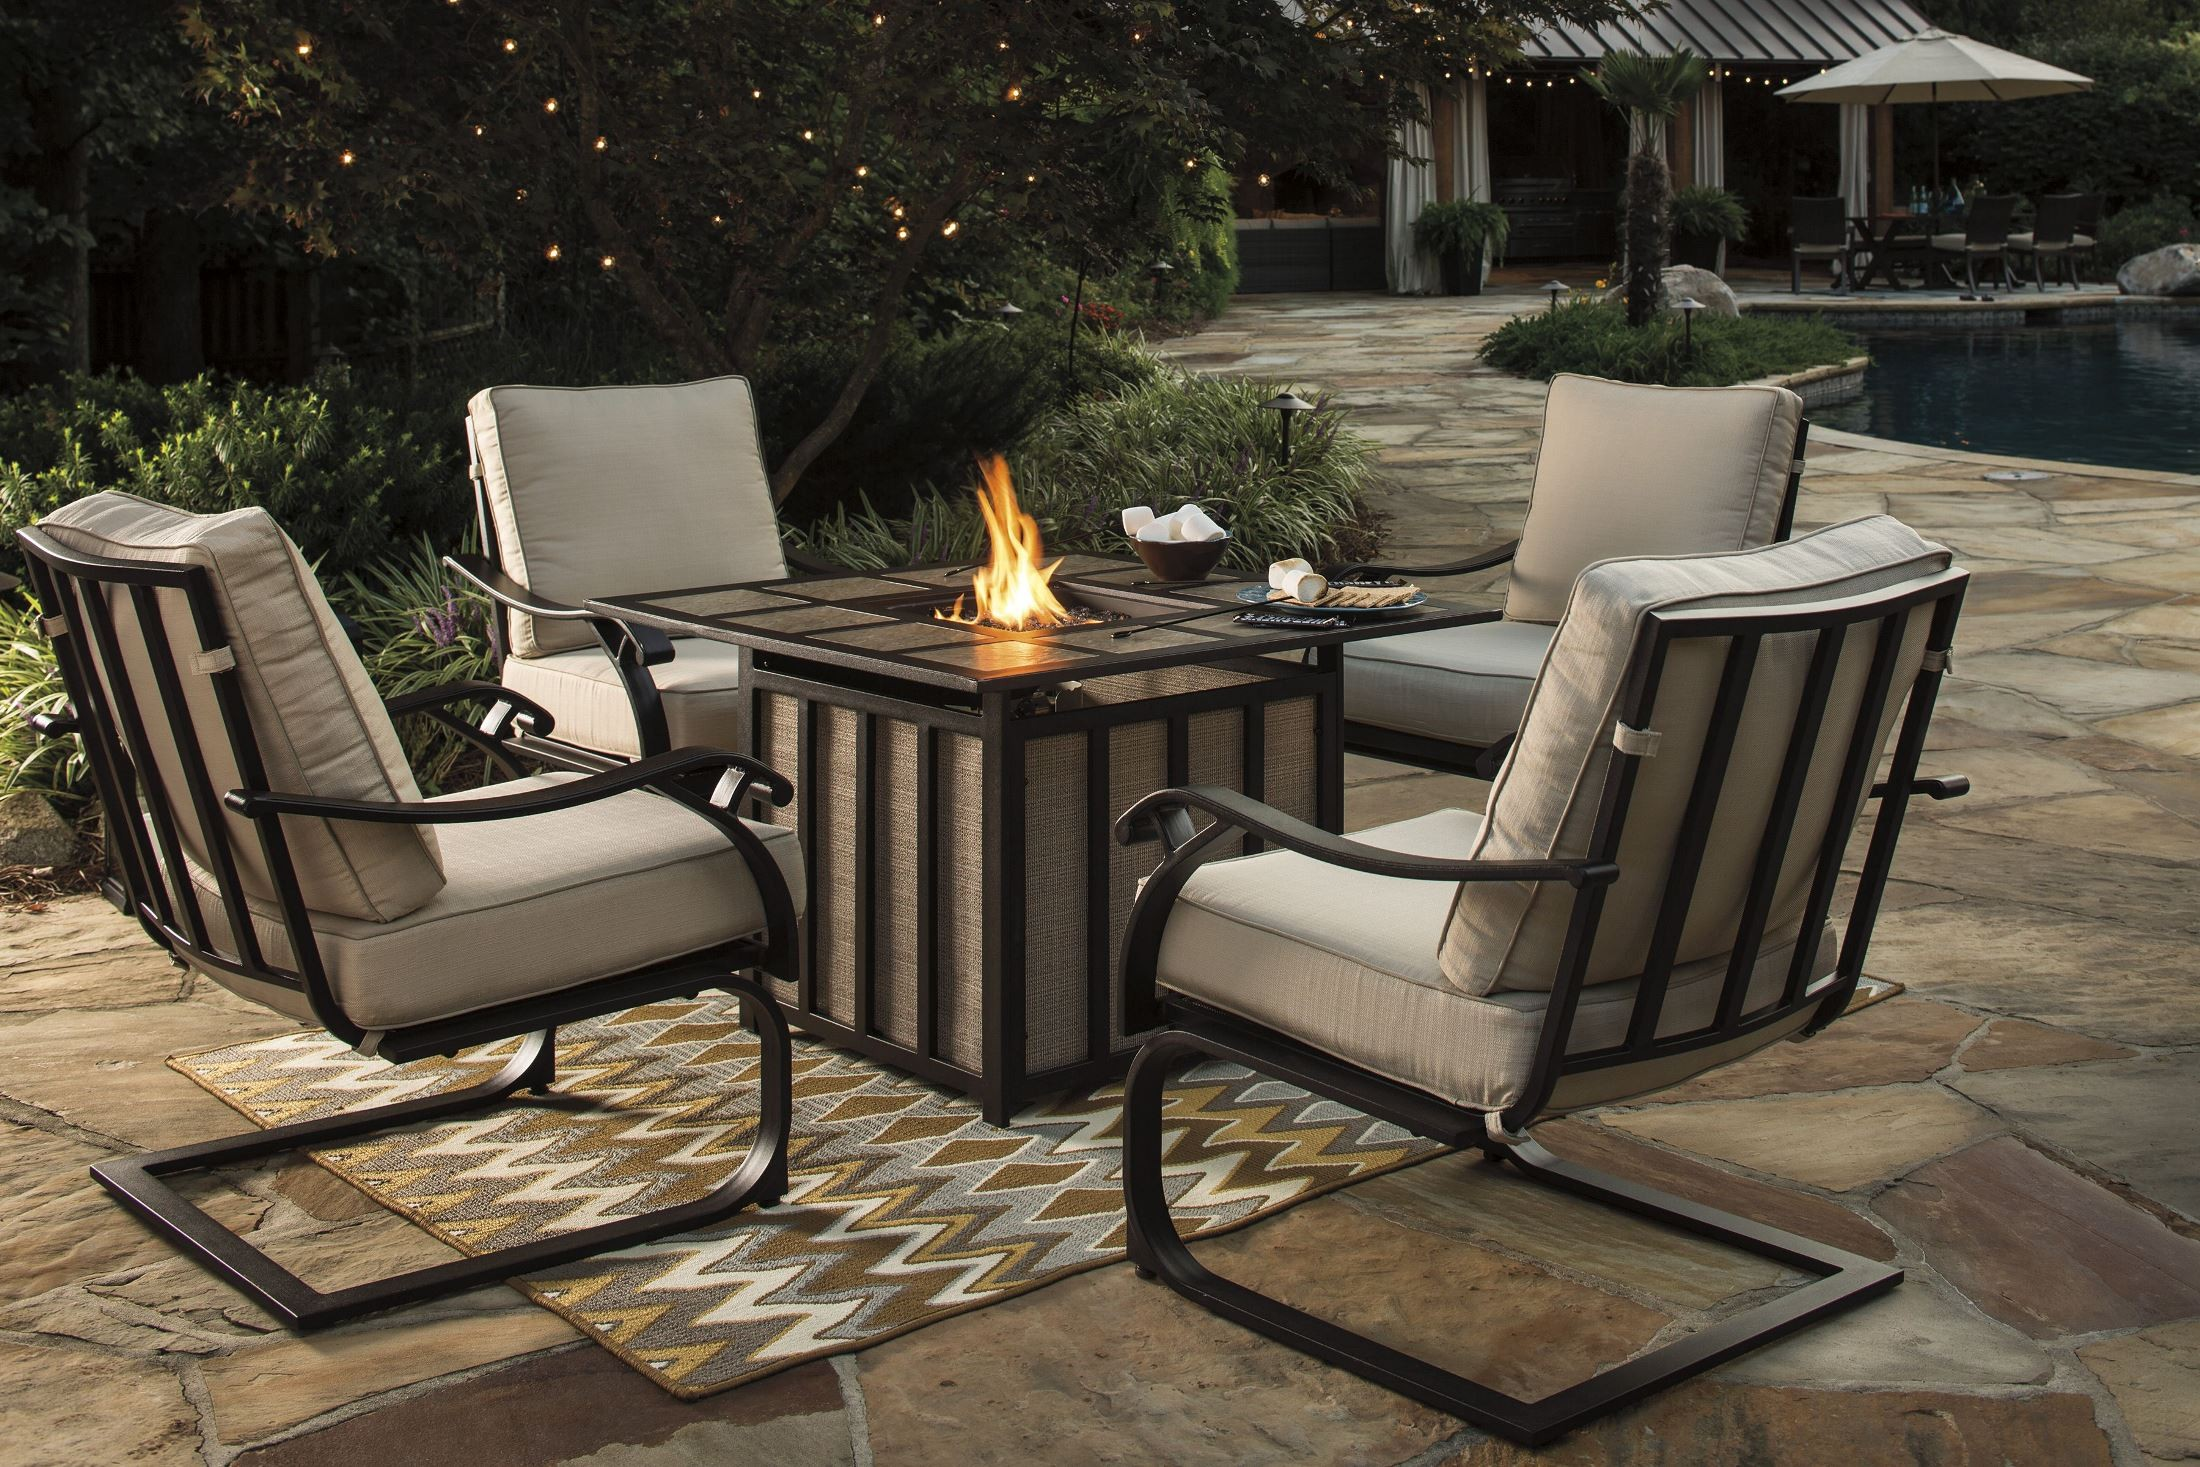 Wandon Beige and Brown Outdoor Square Fire Pit Outdoor ... on Outdoor Dining Tables With Fire Pit id=77276